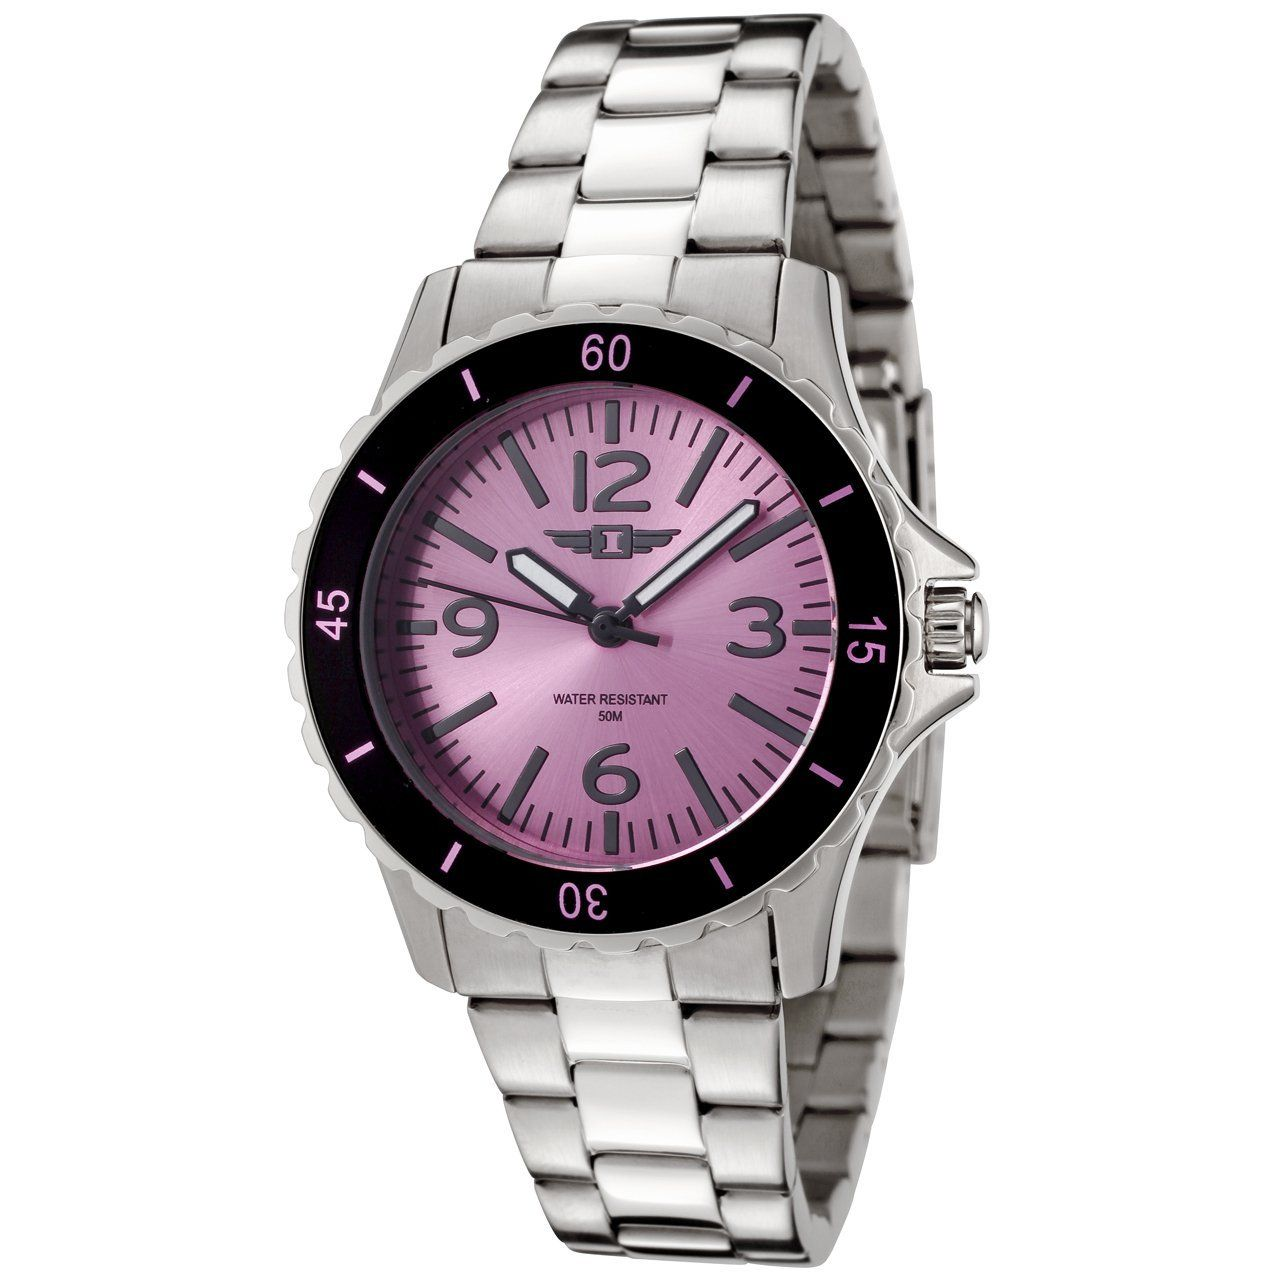 I By Invicta Women S 89051 003 Stainless Steel Watch Casual Watch Invicta Womens Watches Stainless Steel Watch Women Japanese Quartz Stainless Steel Clasp